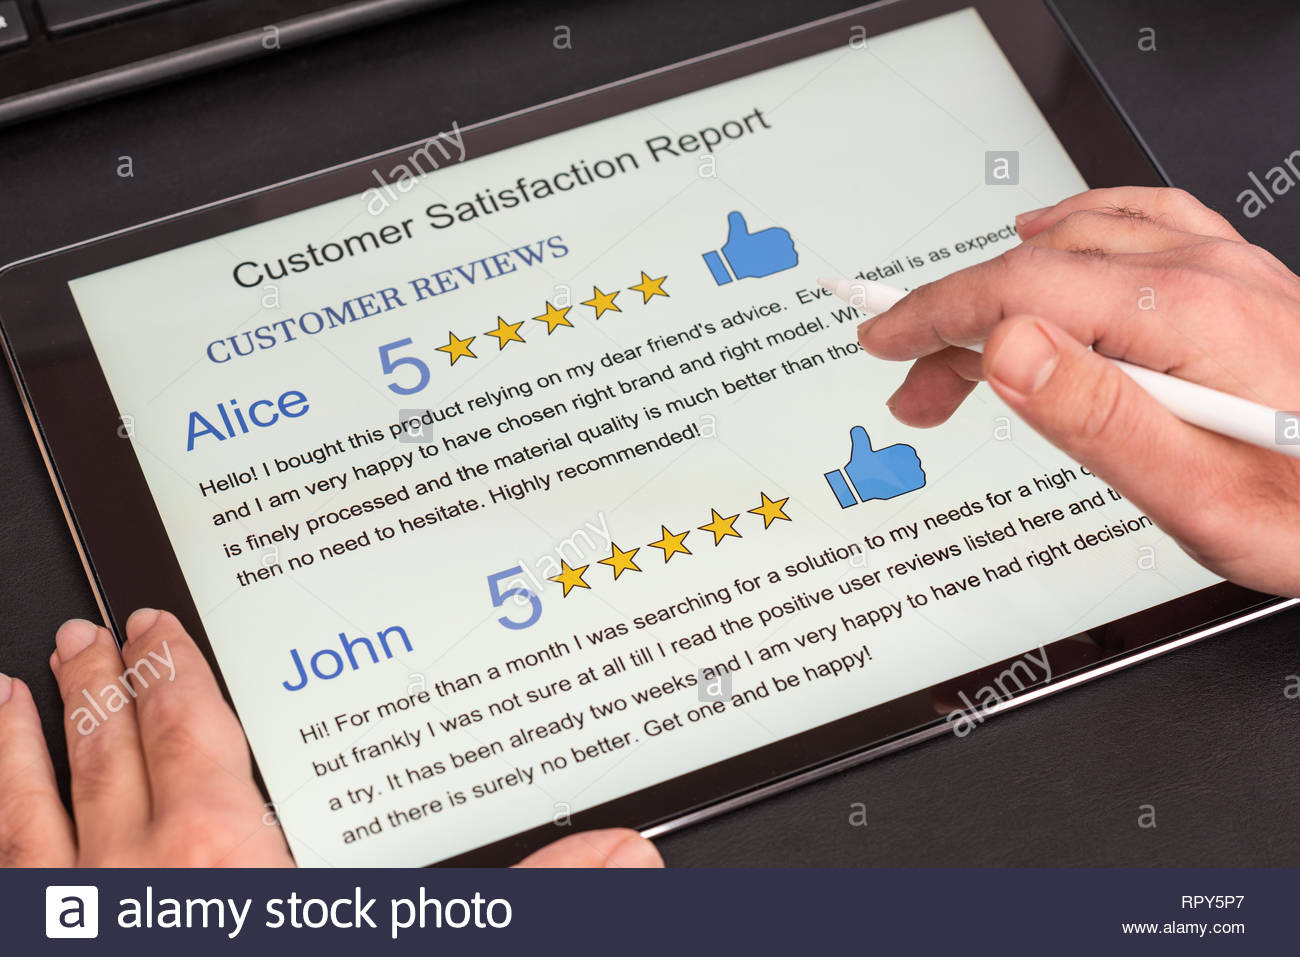 Customer Reviews Attachment to Customer Satisfaction Report on Digital Tablet In Office - Stock Image